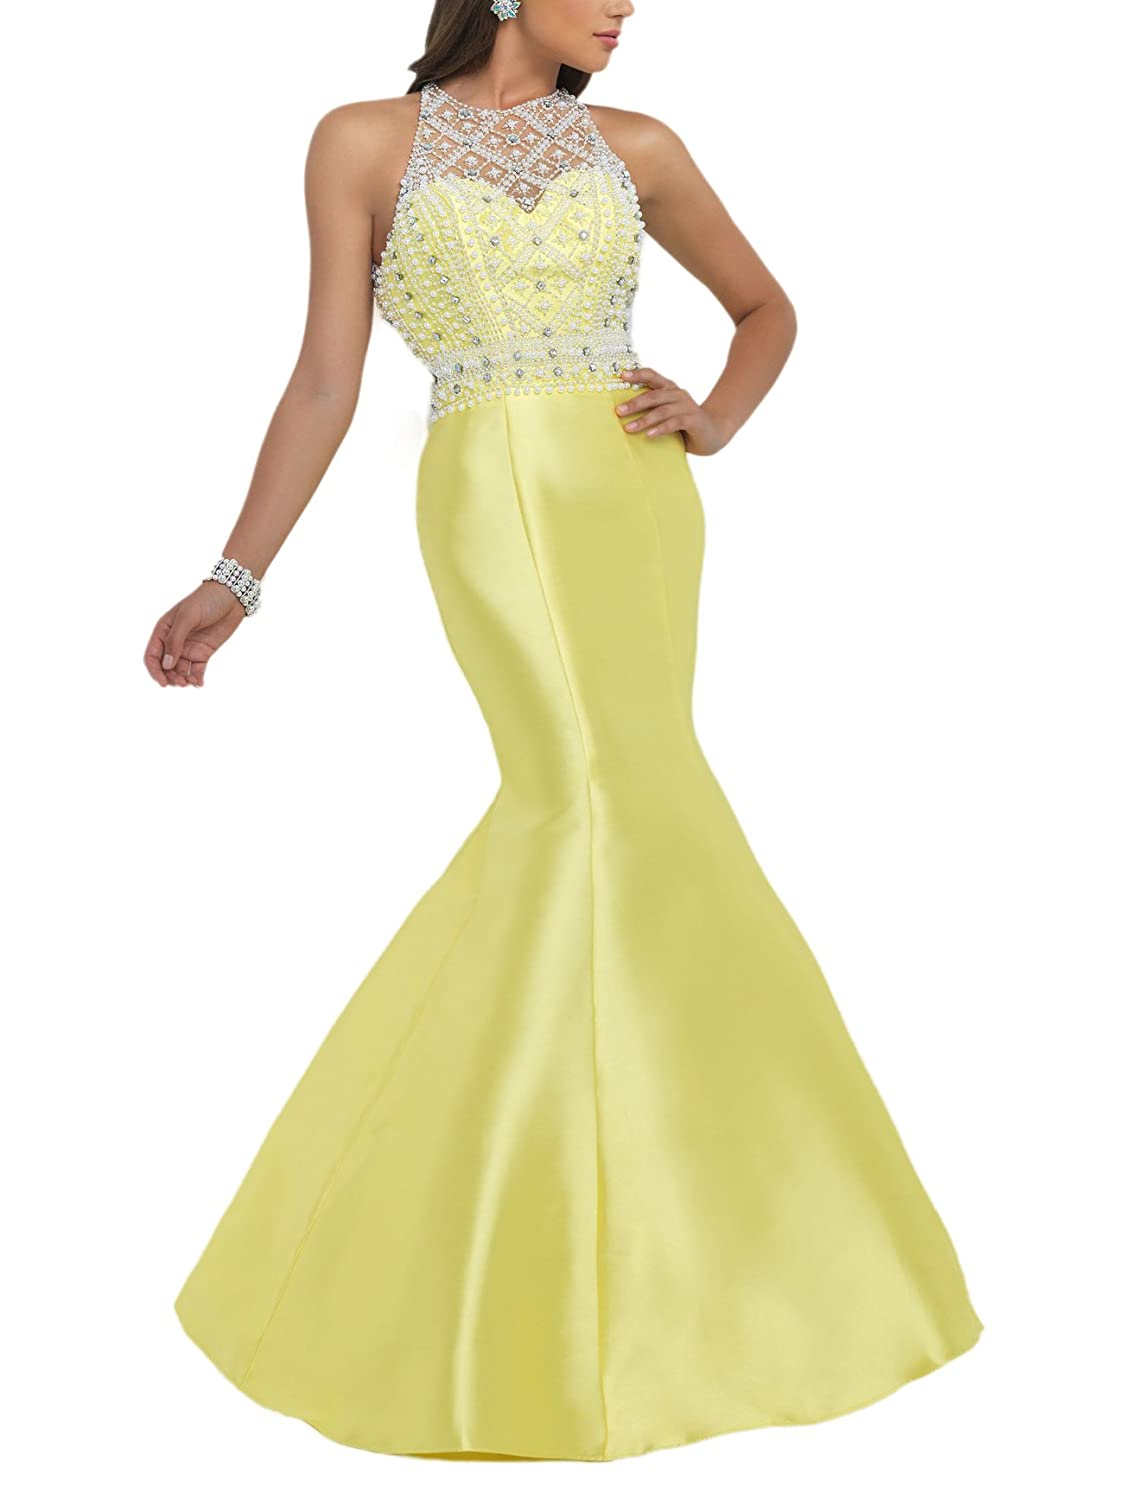 Bridal_Mall Women's Jewel Neck Beaded with Stain Mermaid Evening Dresses